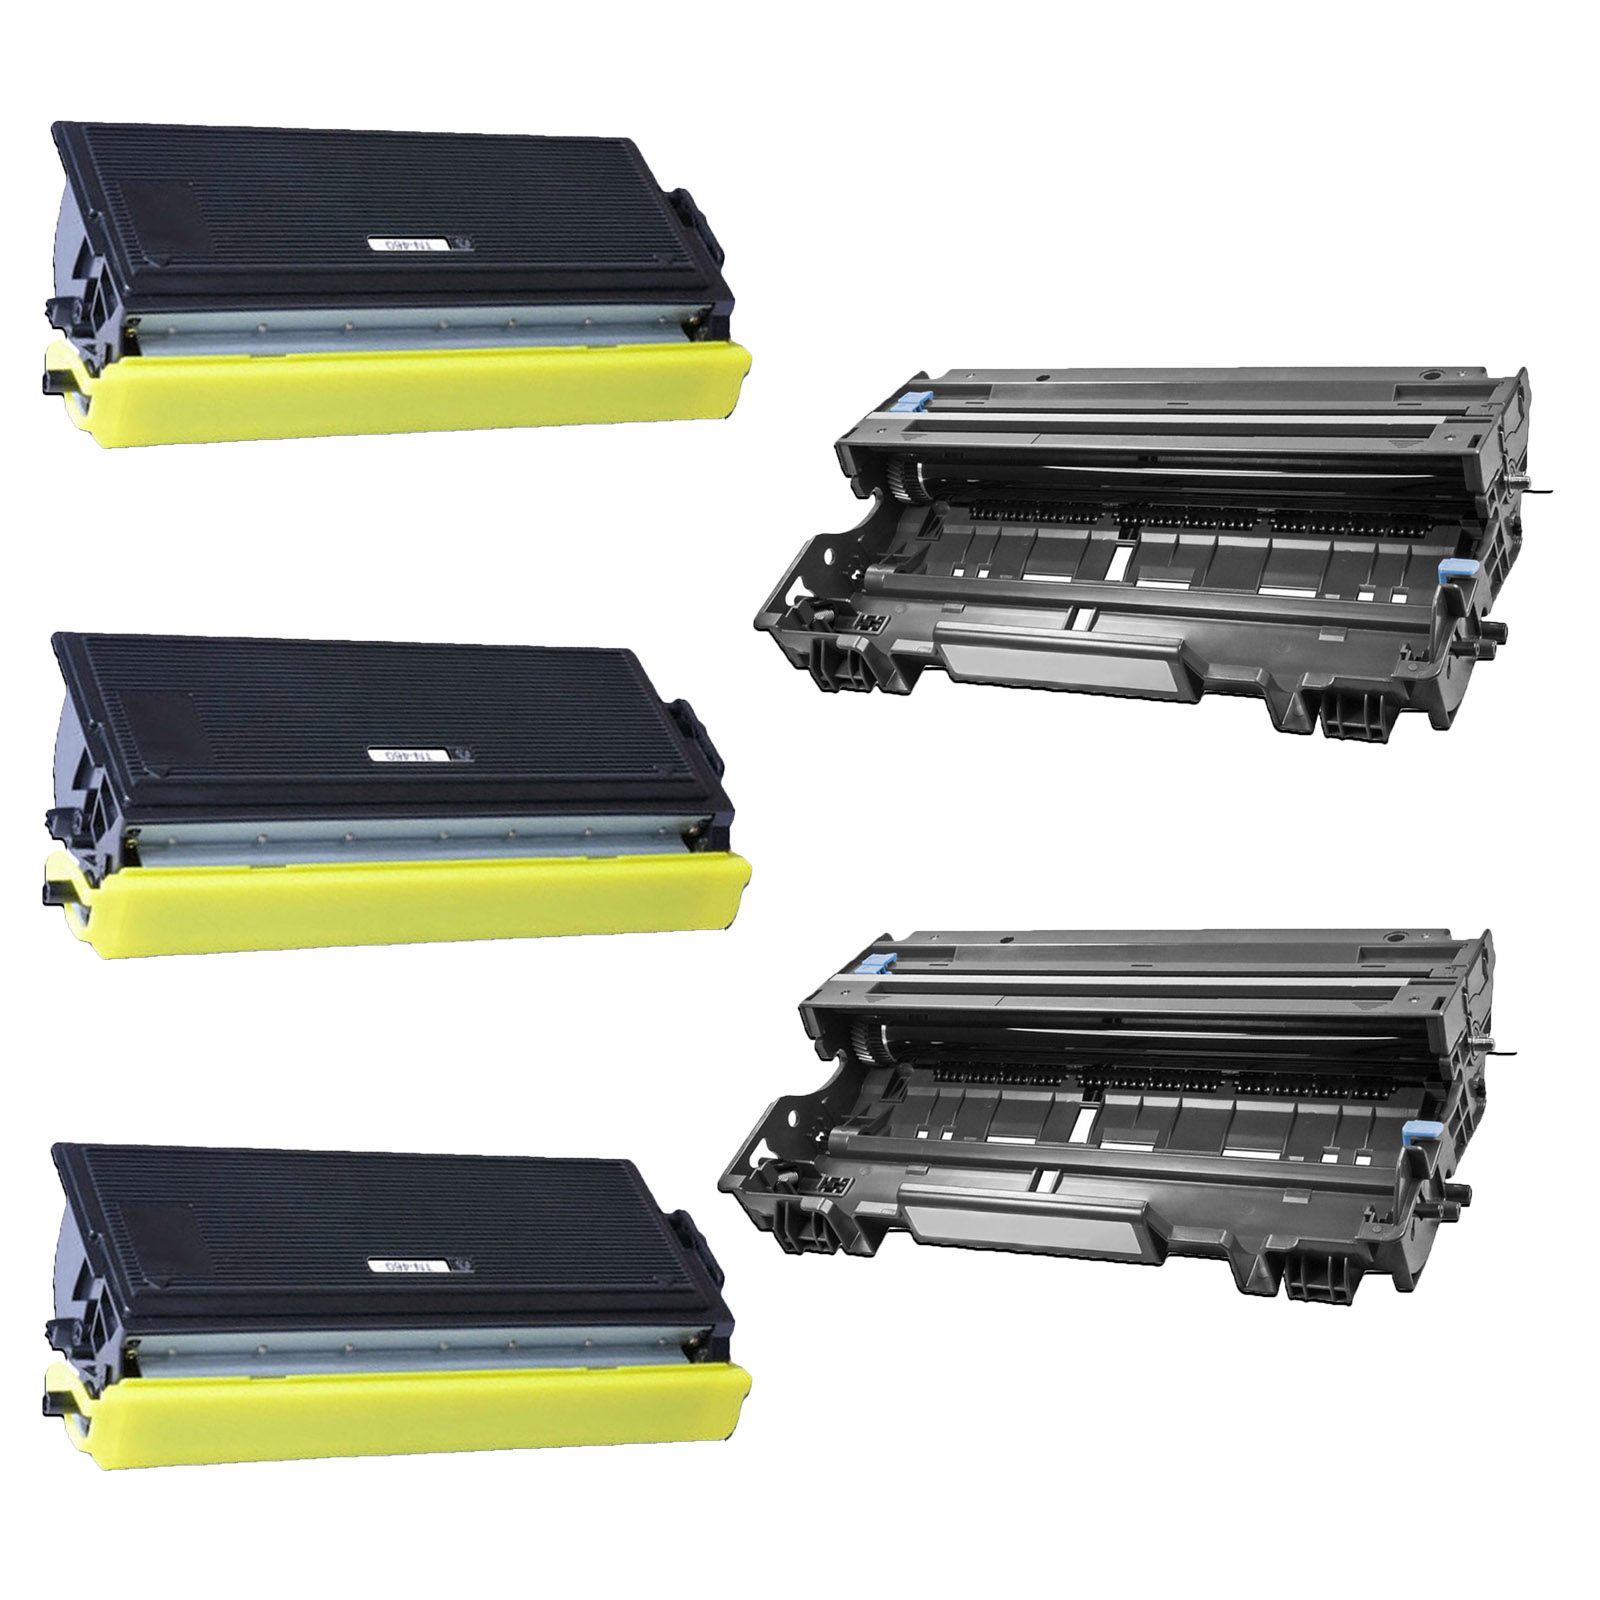 1PK TN460 Toner Cartridge For Brother FAX 8350p 8750p MFC 1260 1270 2500 8300